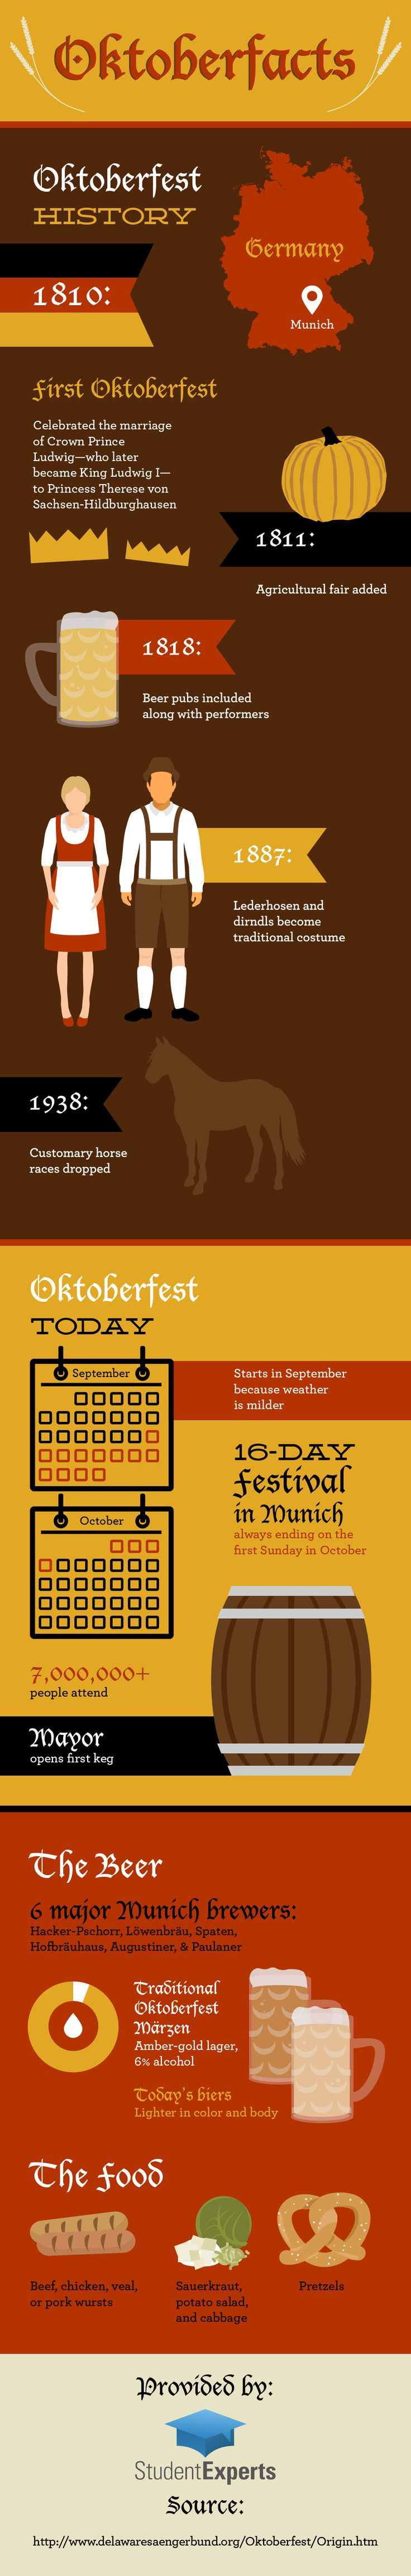 Are you thinking about celebrating Oktoberfest this year with a few beers? Pace yourself—it goes on for 16 days! Check out this infographic to learn about the festival's history, traditional beer selection, and other fun facts.